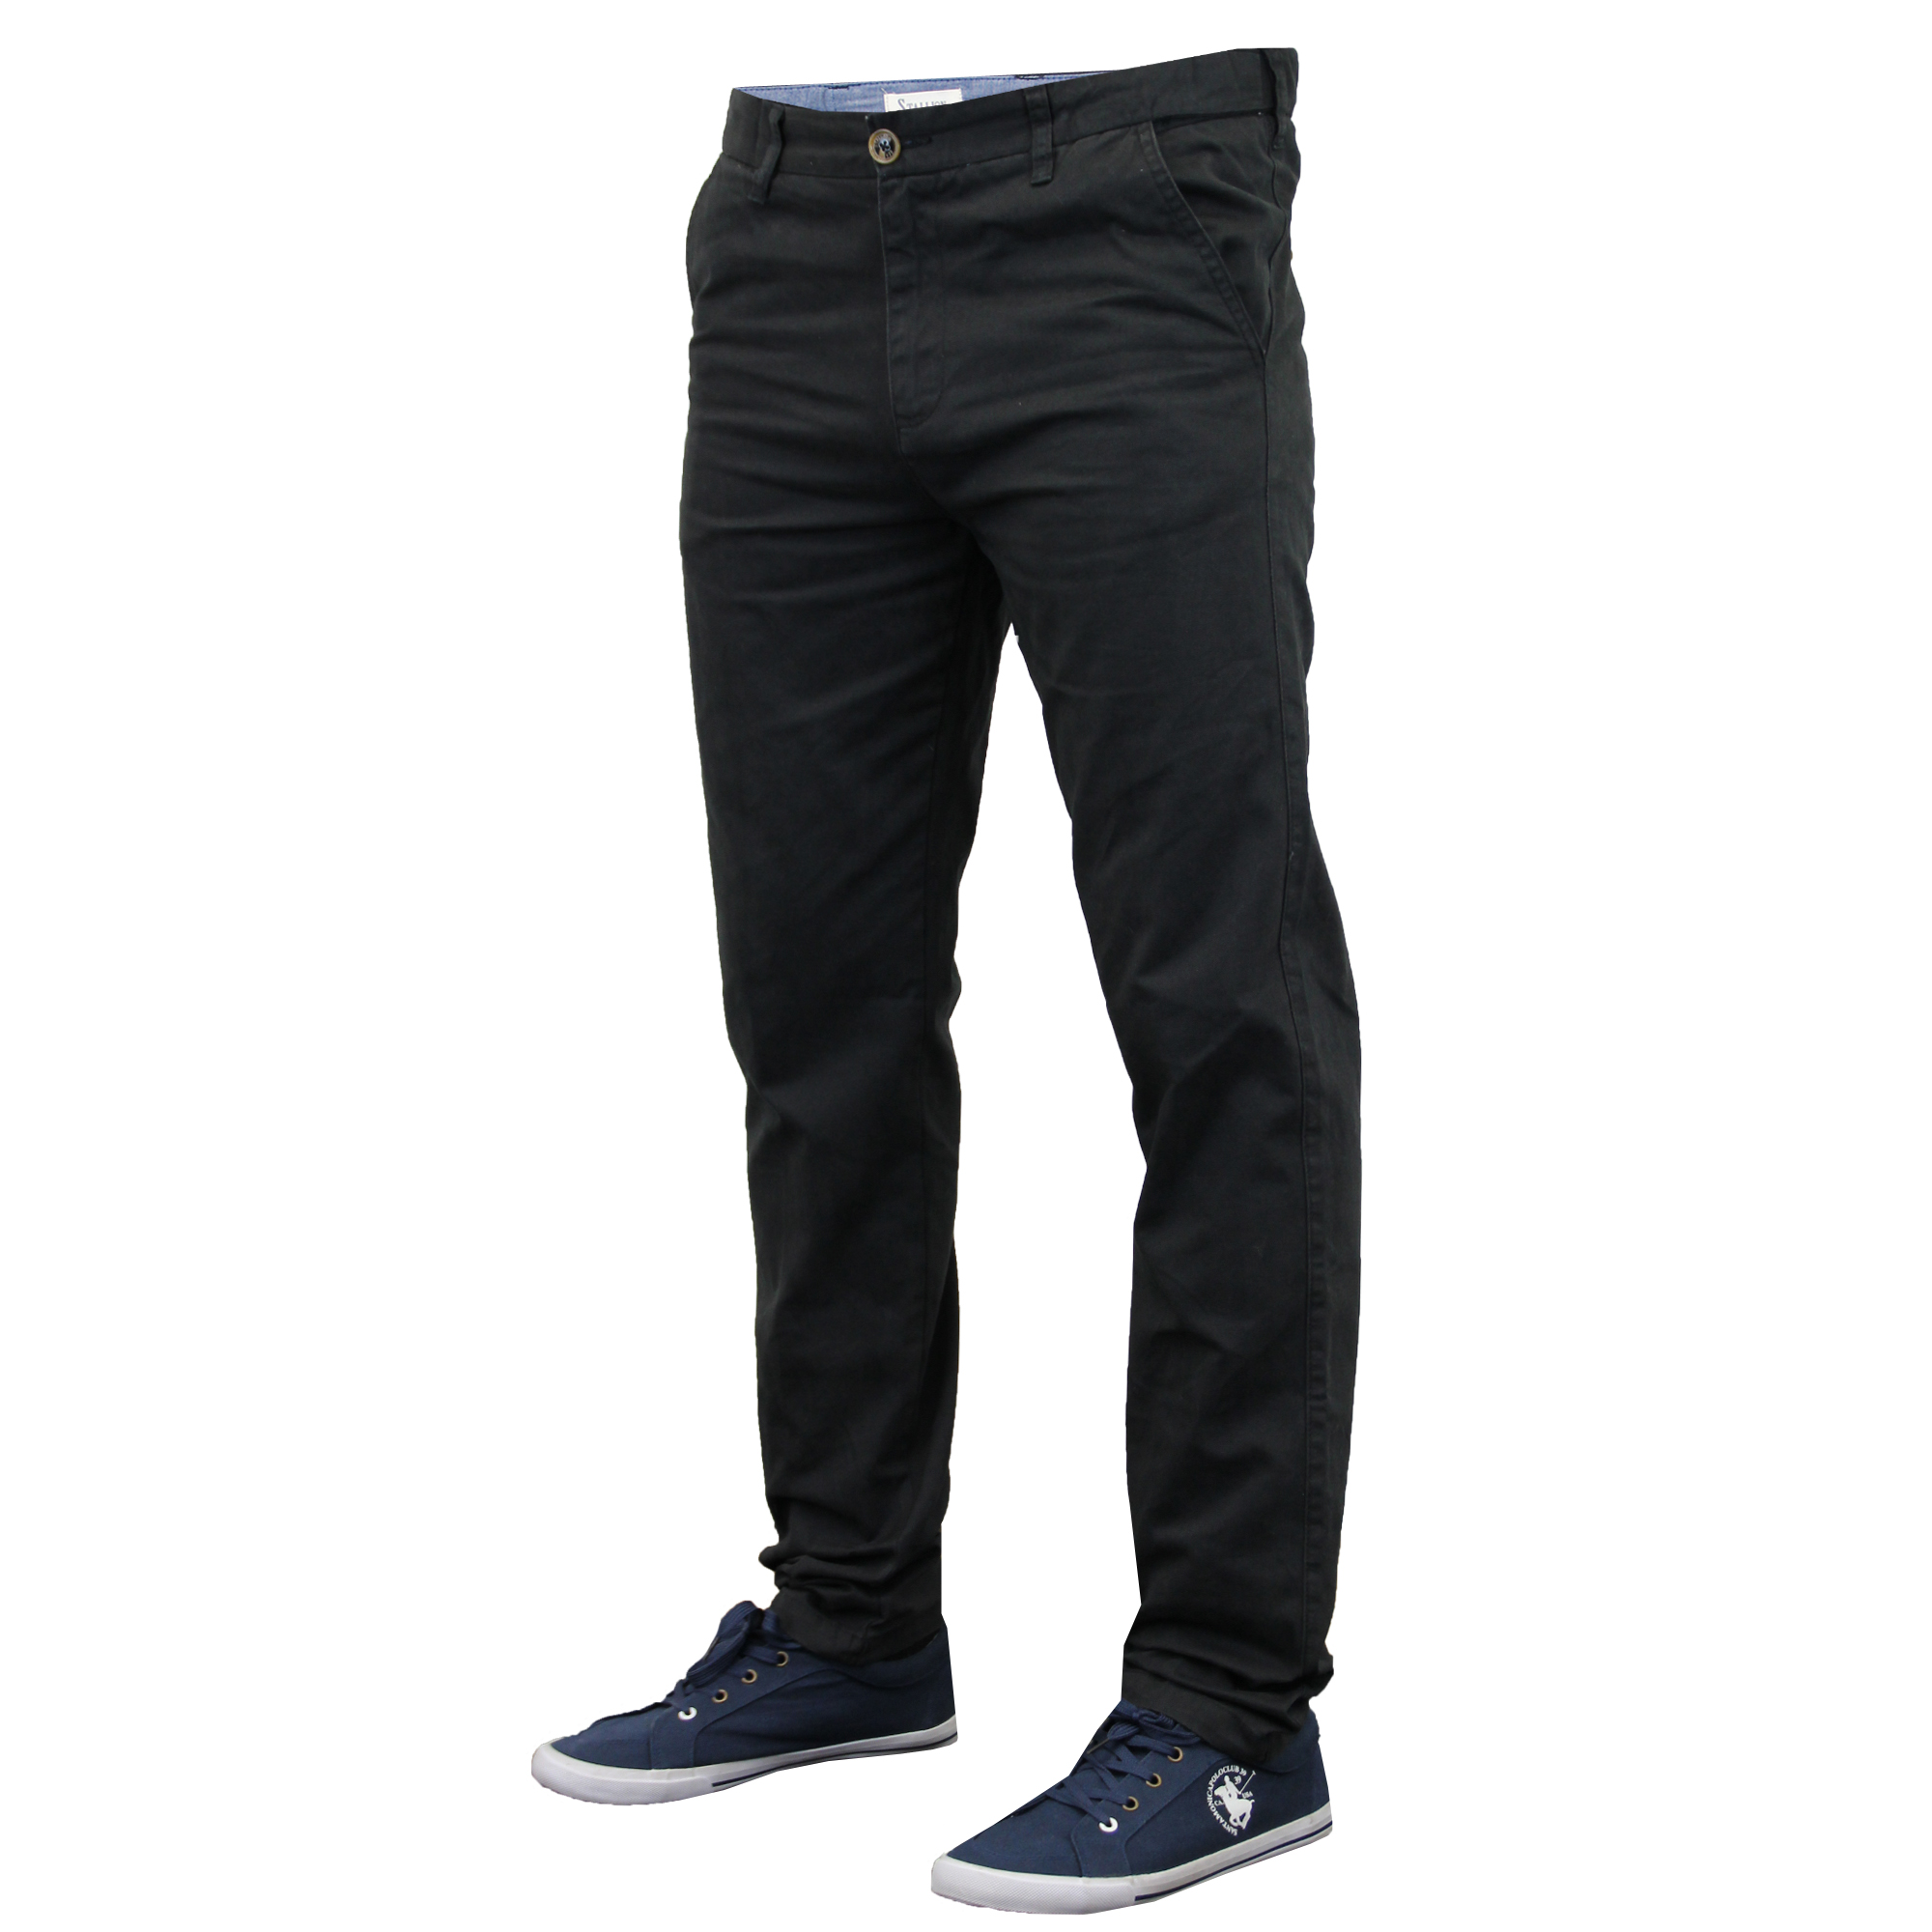 Pastel-colored pants in blue look great with white or with shirts of a similar intensity; a pale pink shirt is a great match. Similarly, dark green pants would work wonderfully with a charcoal sweater or dark red T-shirt. All chinos come with a flat-front design and tailored fit. Shorts offer the same versatility.